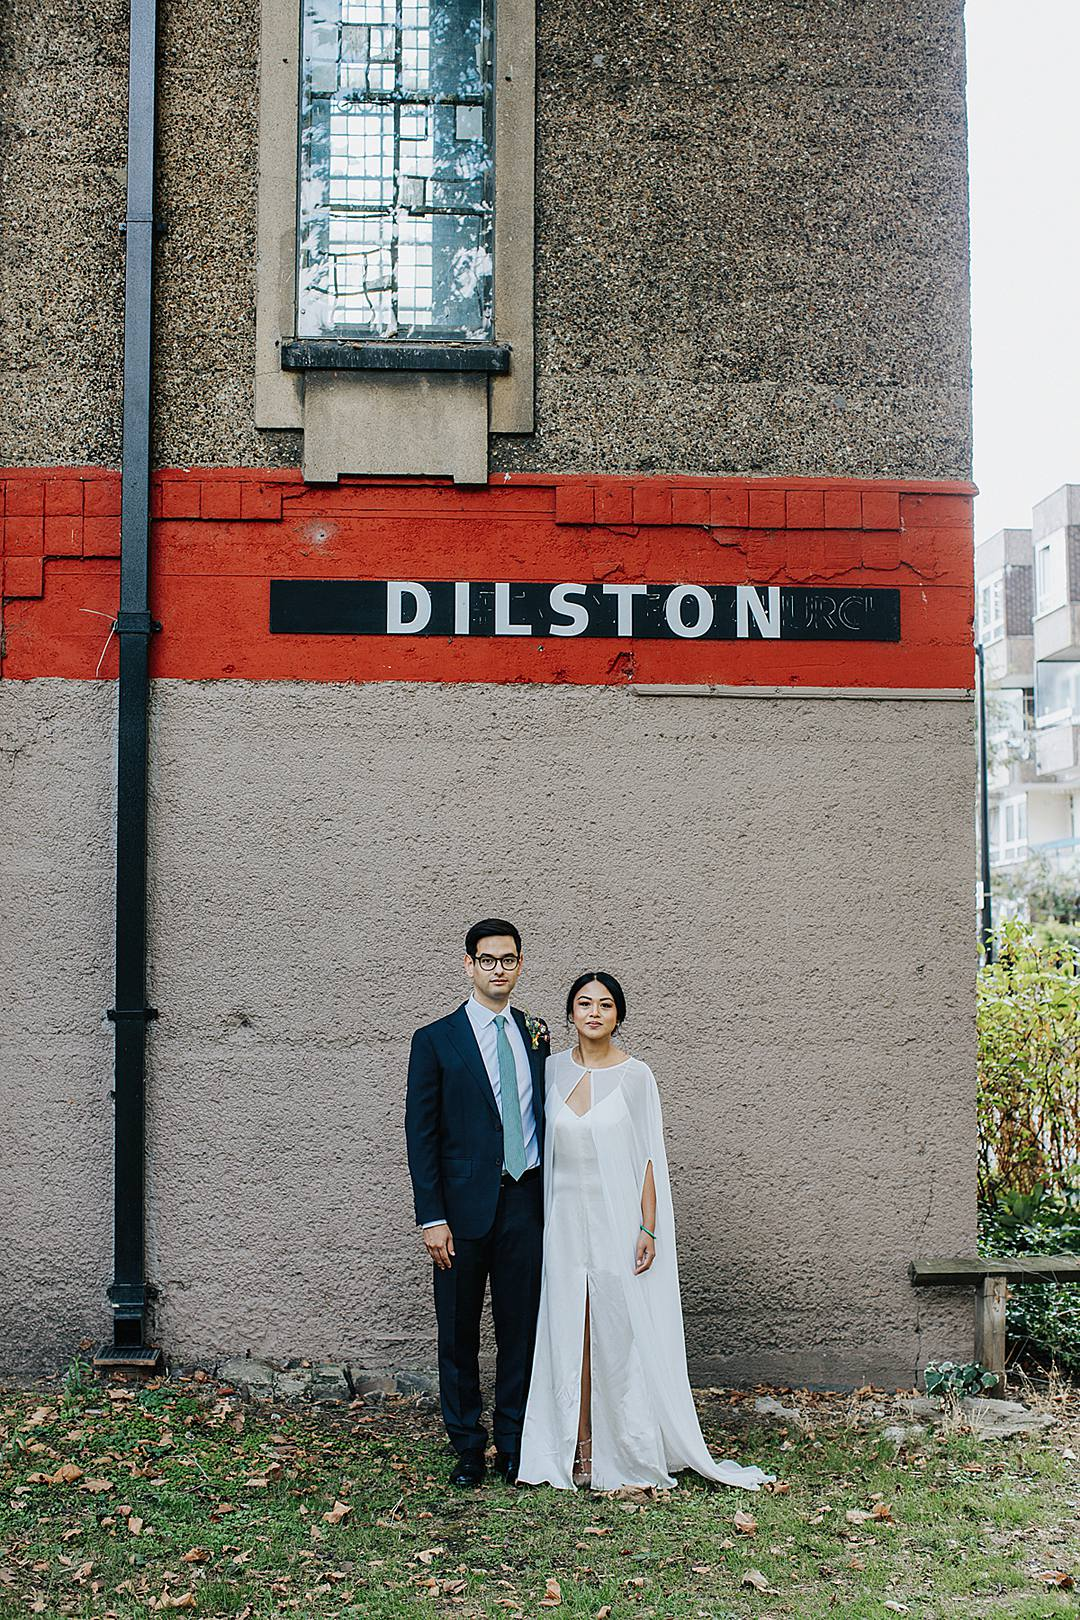 Devine Bride, London Wedding, City Wedding, Devlin Photos, Contemporary Wedding, Industrial Wedding, Classic Crockery, Real Wedding. 2019 Wedding Trends, Dilston Grove, Chic Wedding Decor, Pesh Flowers